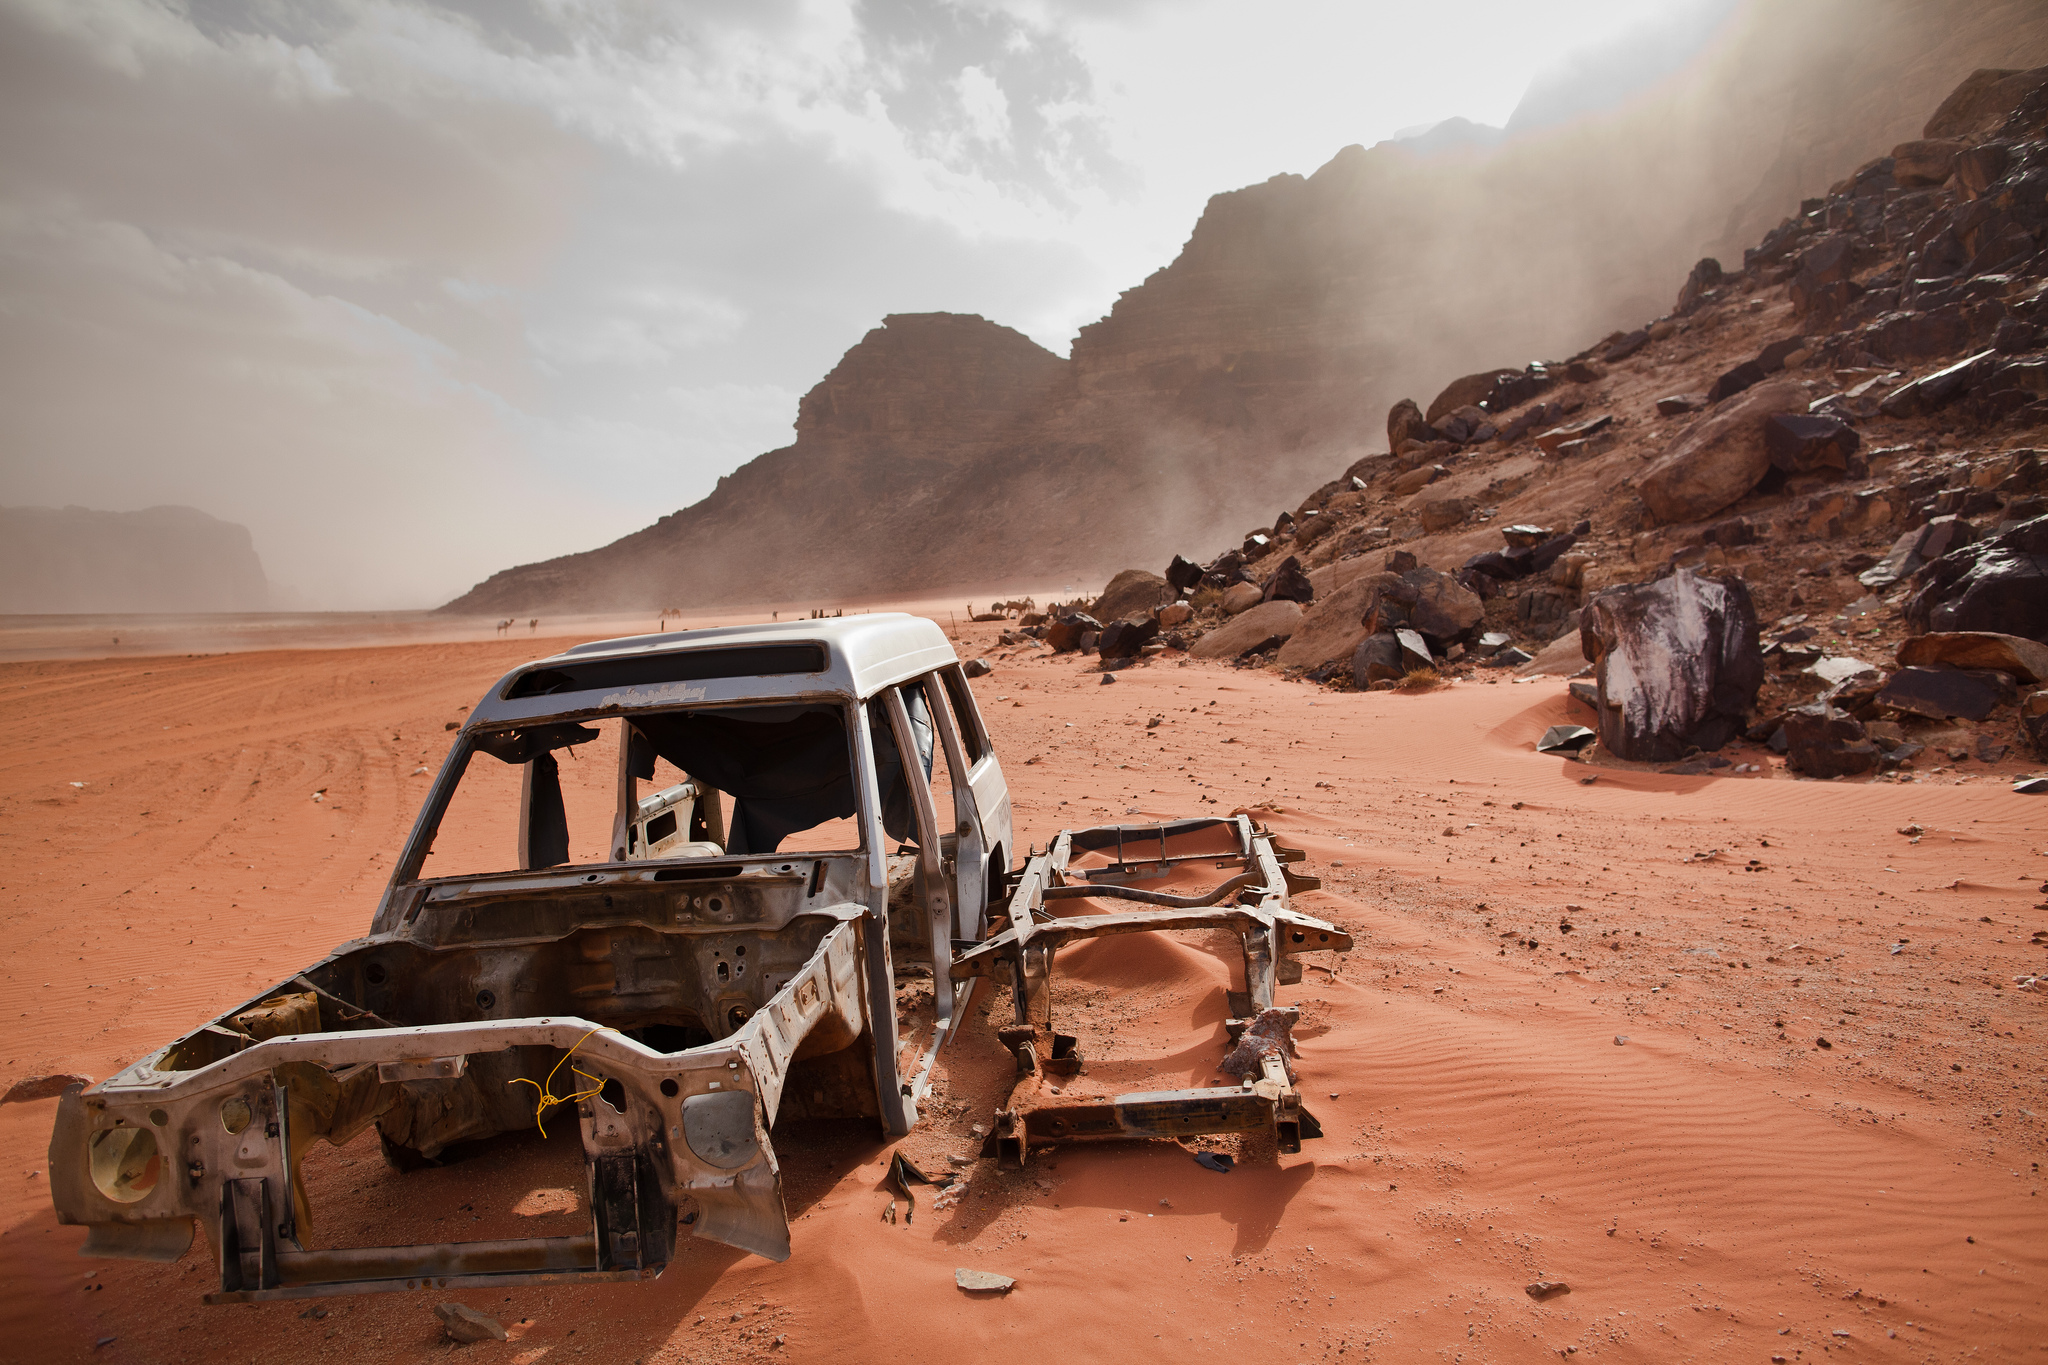 A car chassis lays abandoned in Wadi Rum desert. Image credit:    Eric Montfort   /   Creative Commons